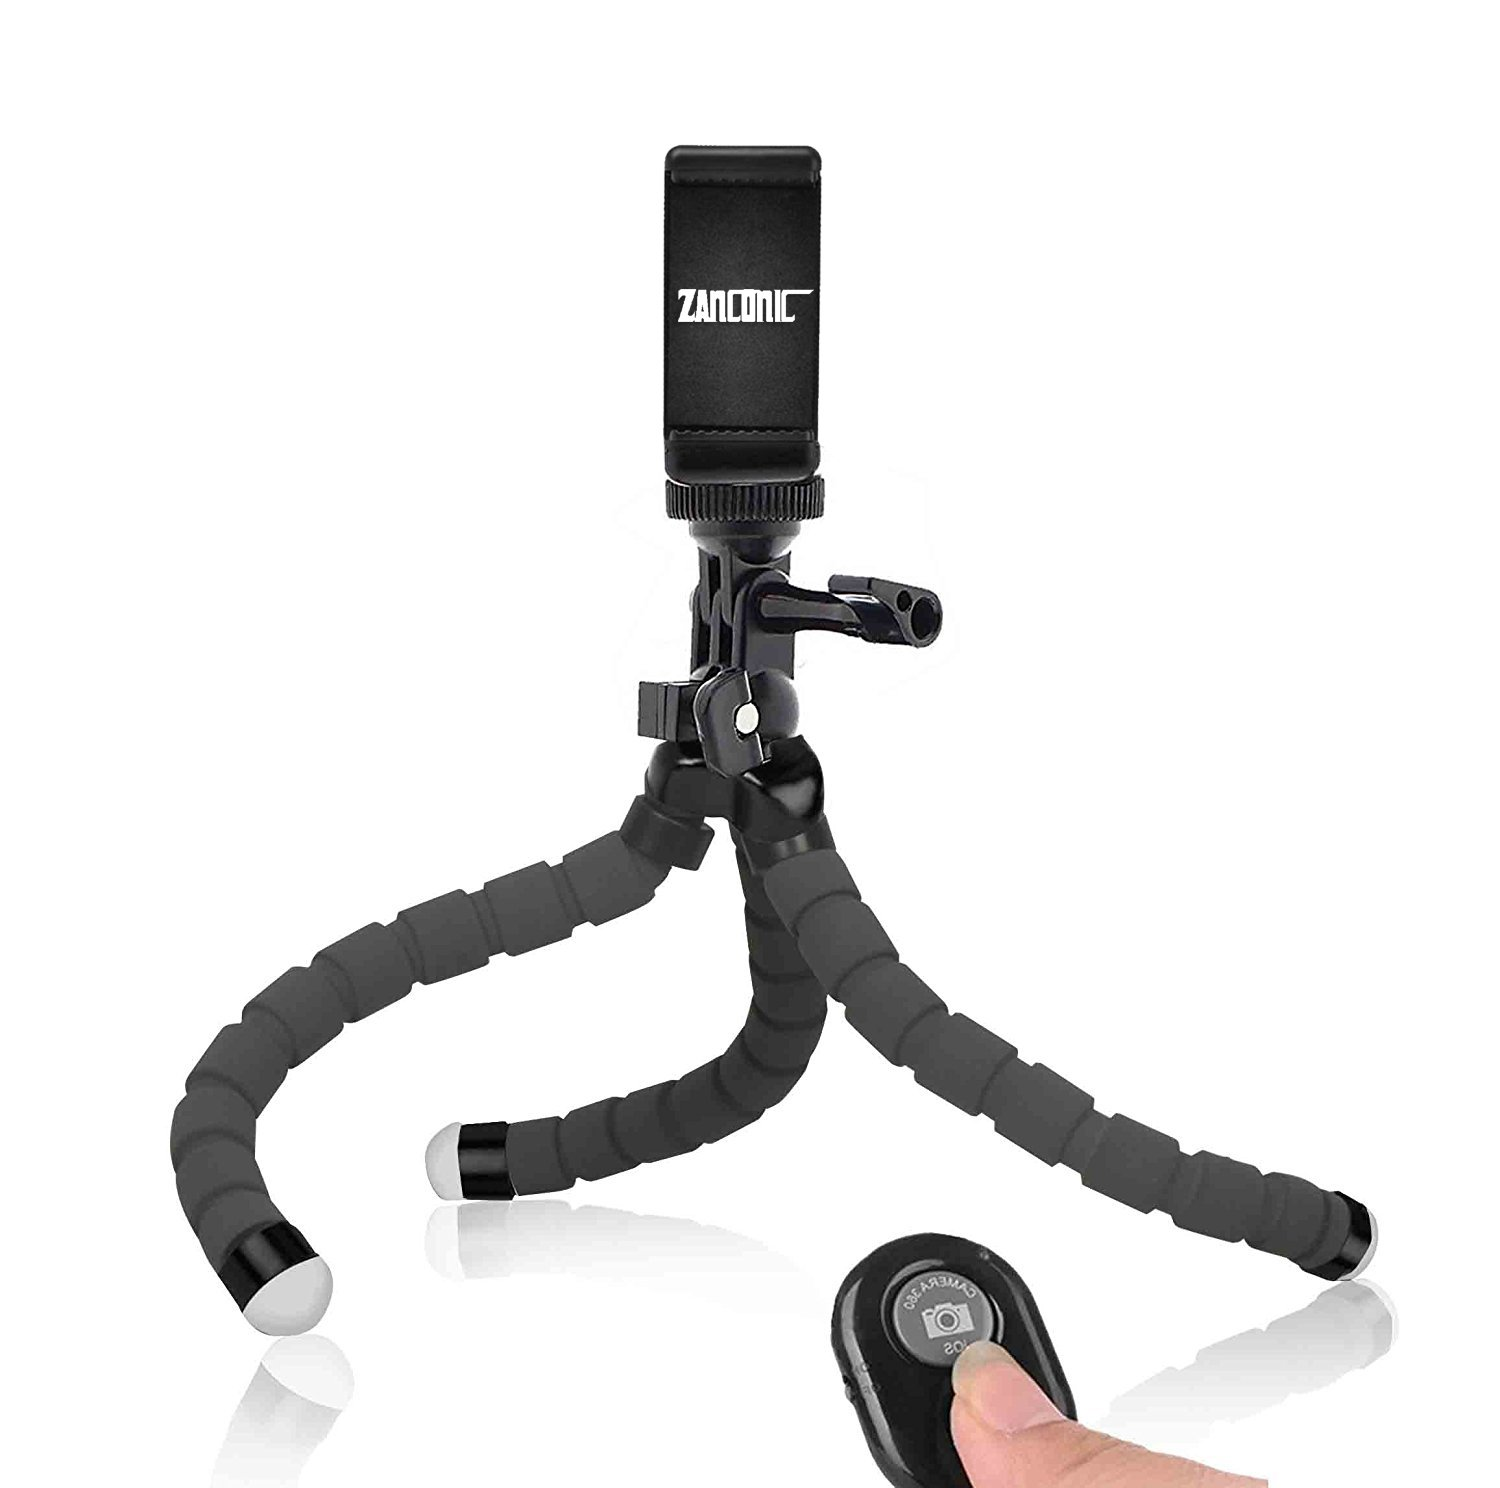 Phone Tripod, Anconic flexible cell phone Tripod with Remote for Iphone& Android Phone, Camera, and Gopro[UPGRADED] by ZANCONIC (Image #7)